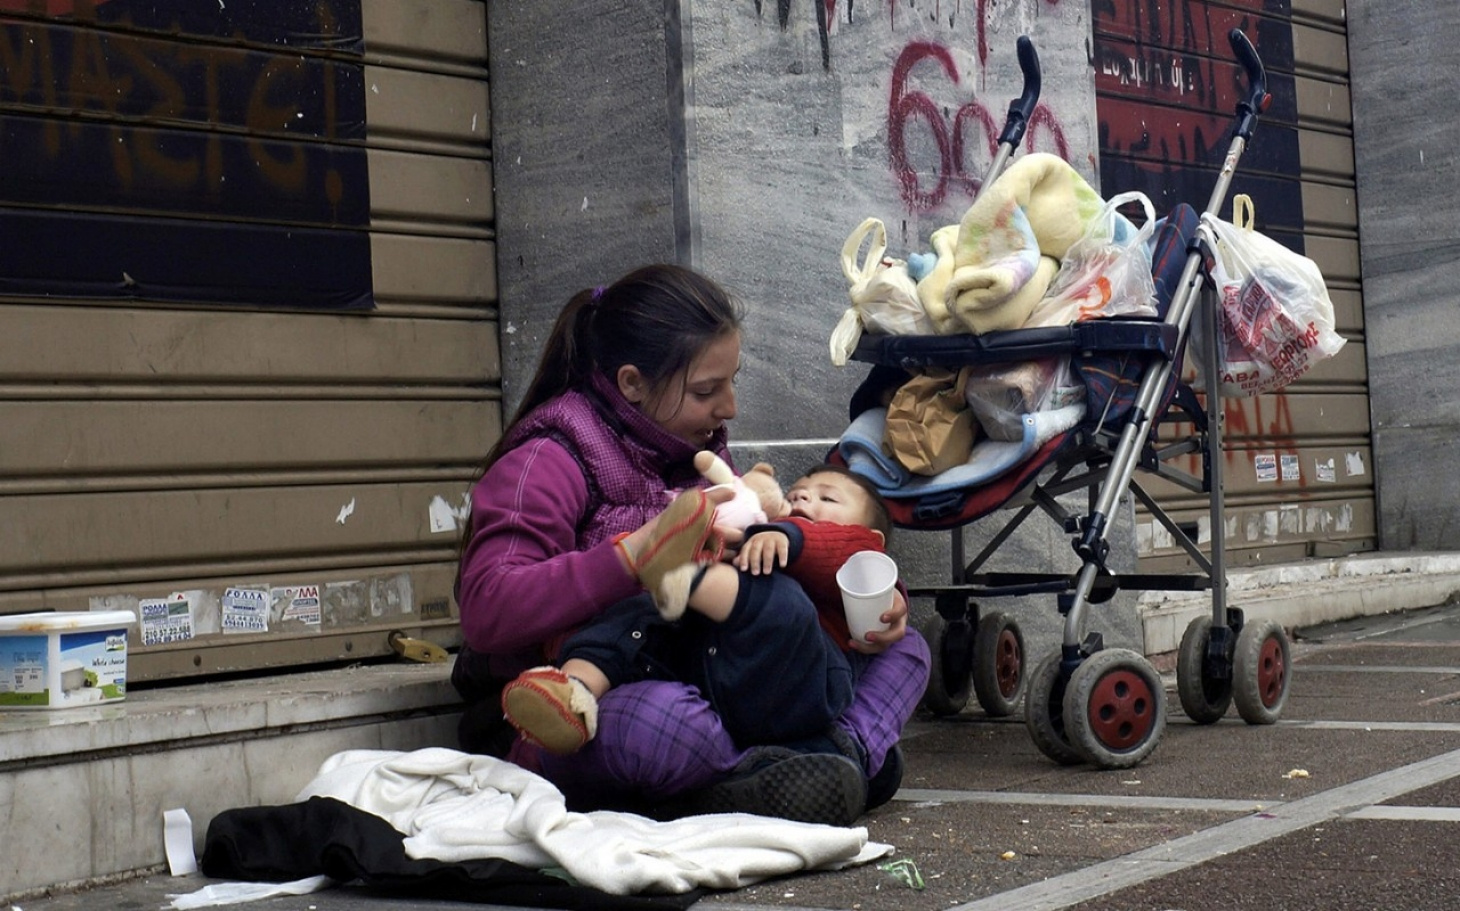 Homeless mother and baby